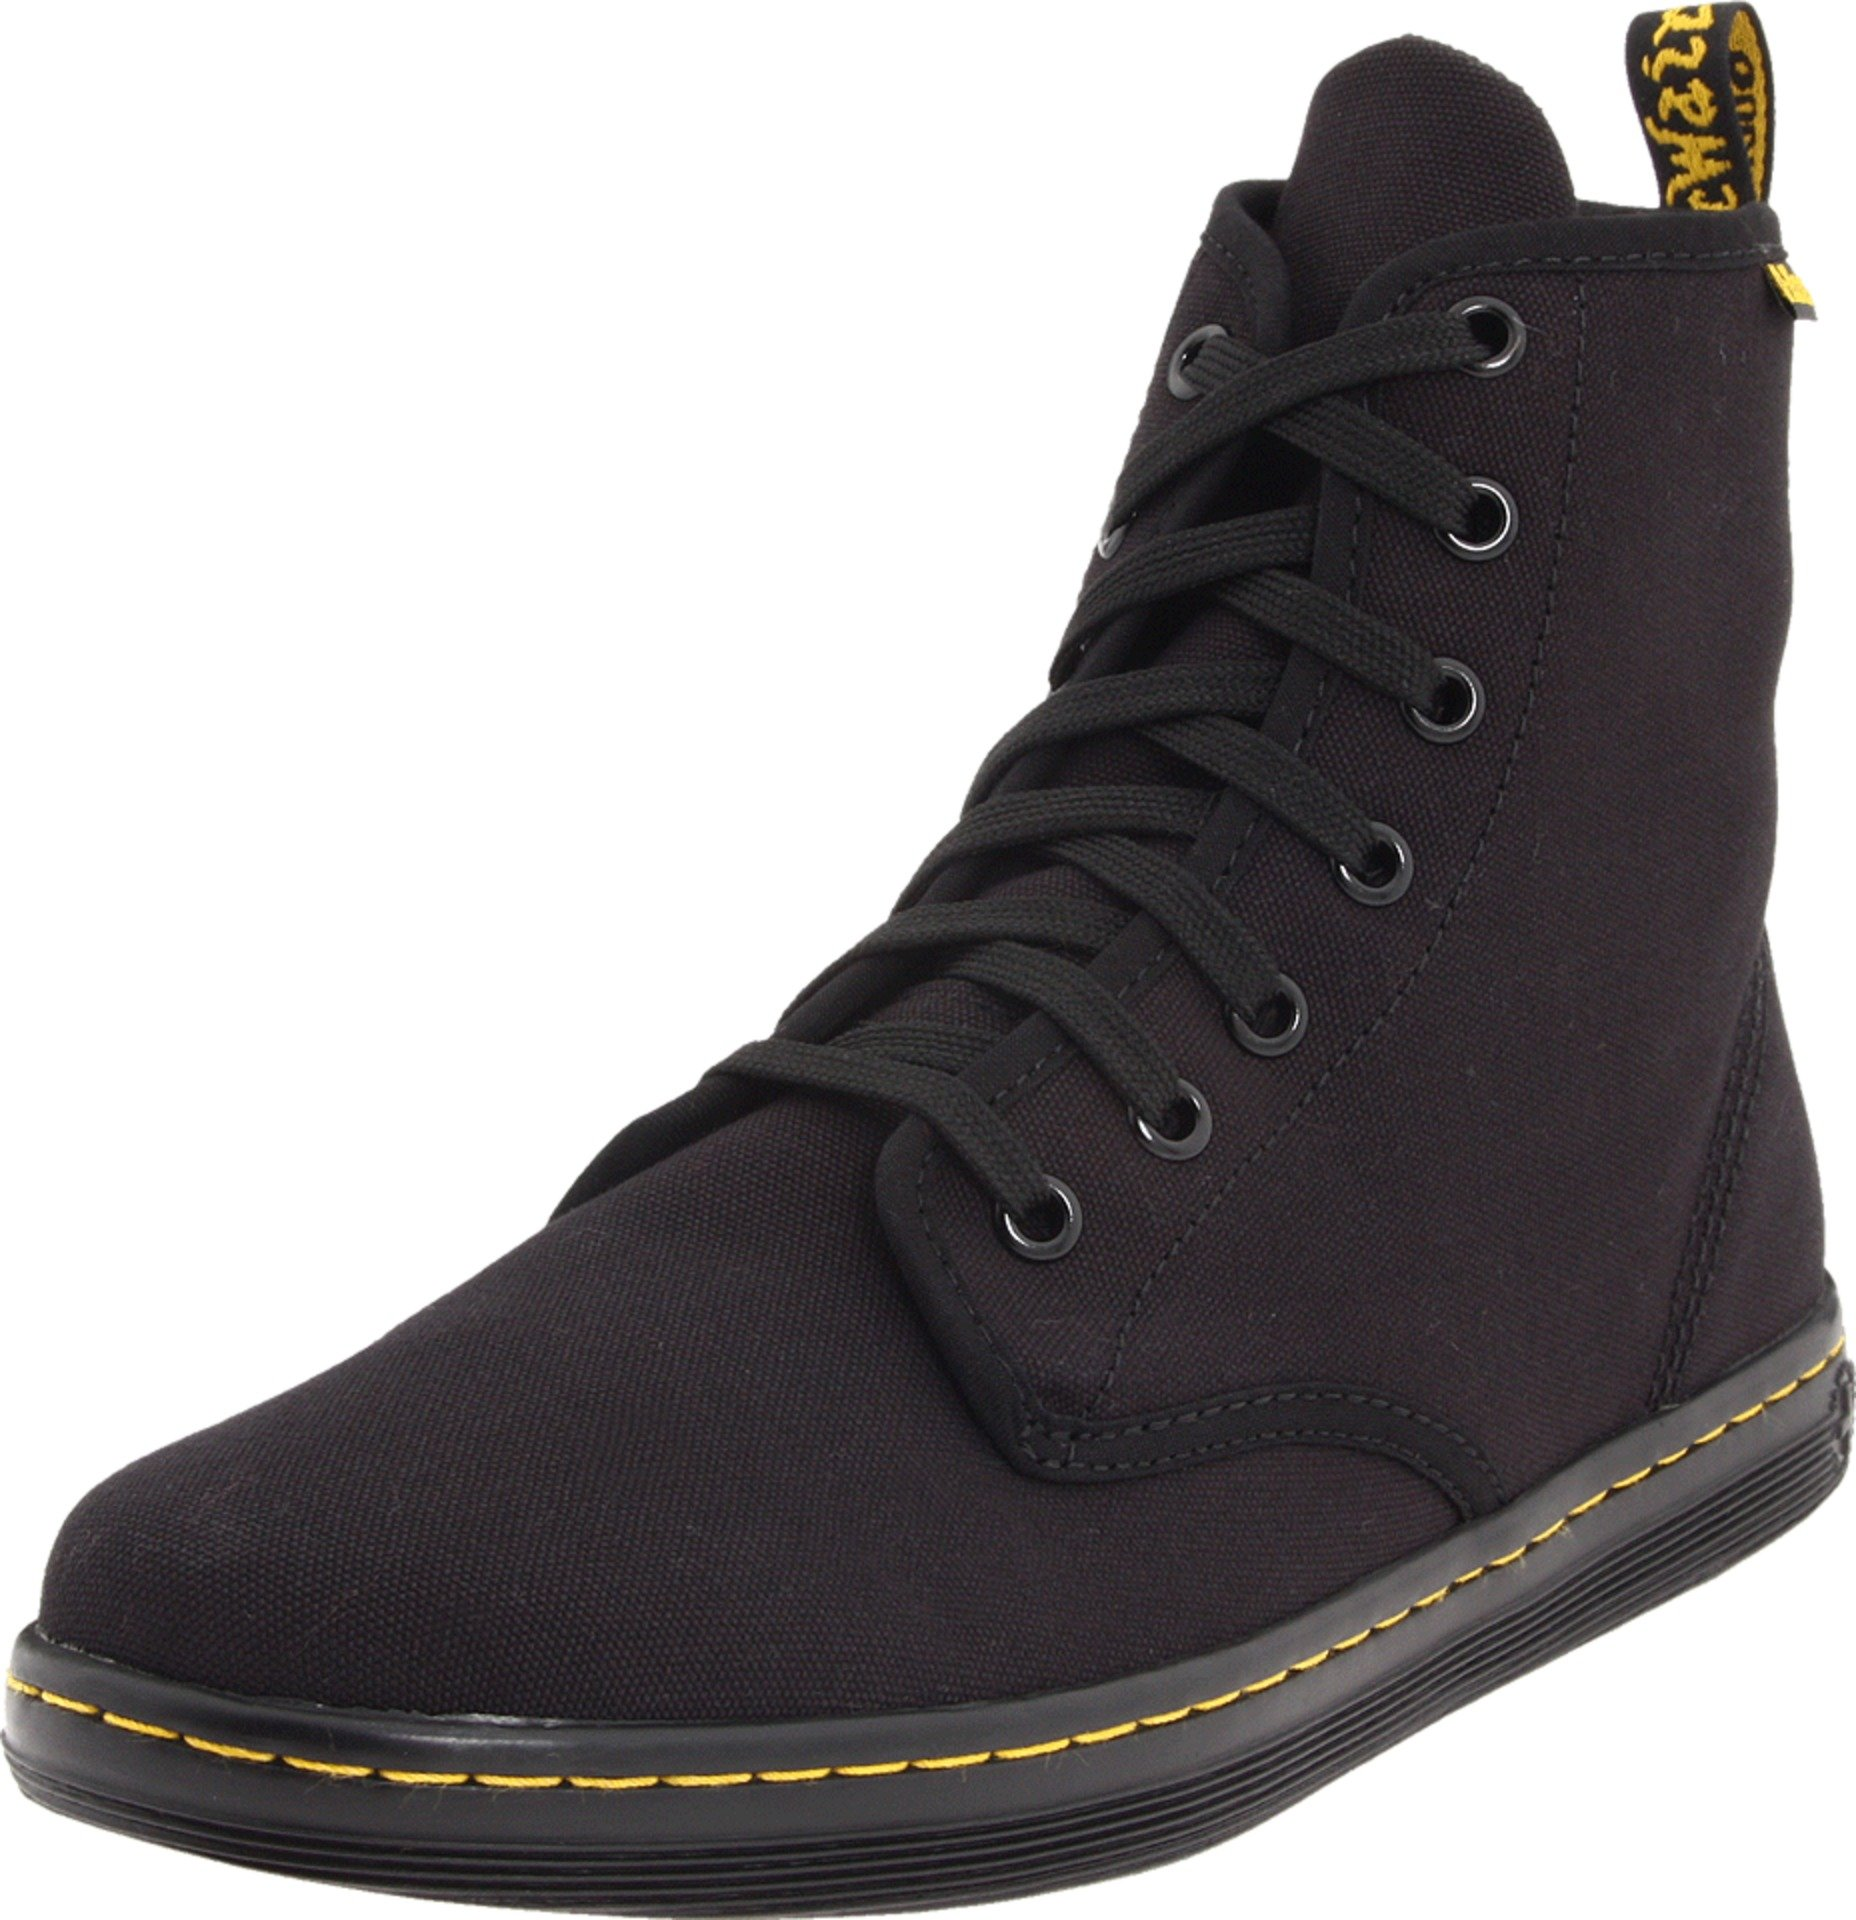 Dr. Martens Women's Shoreditch Boot,Black,5 UK (US Women's 7 M)